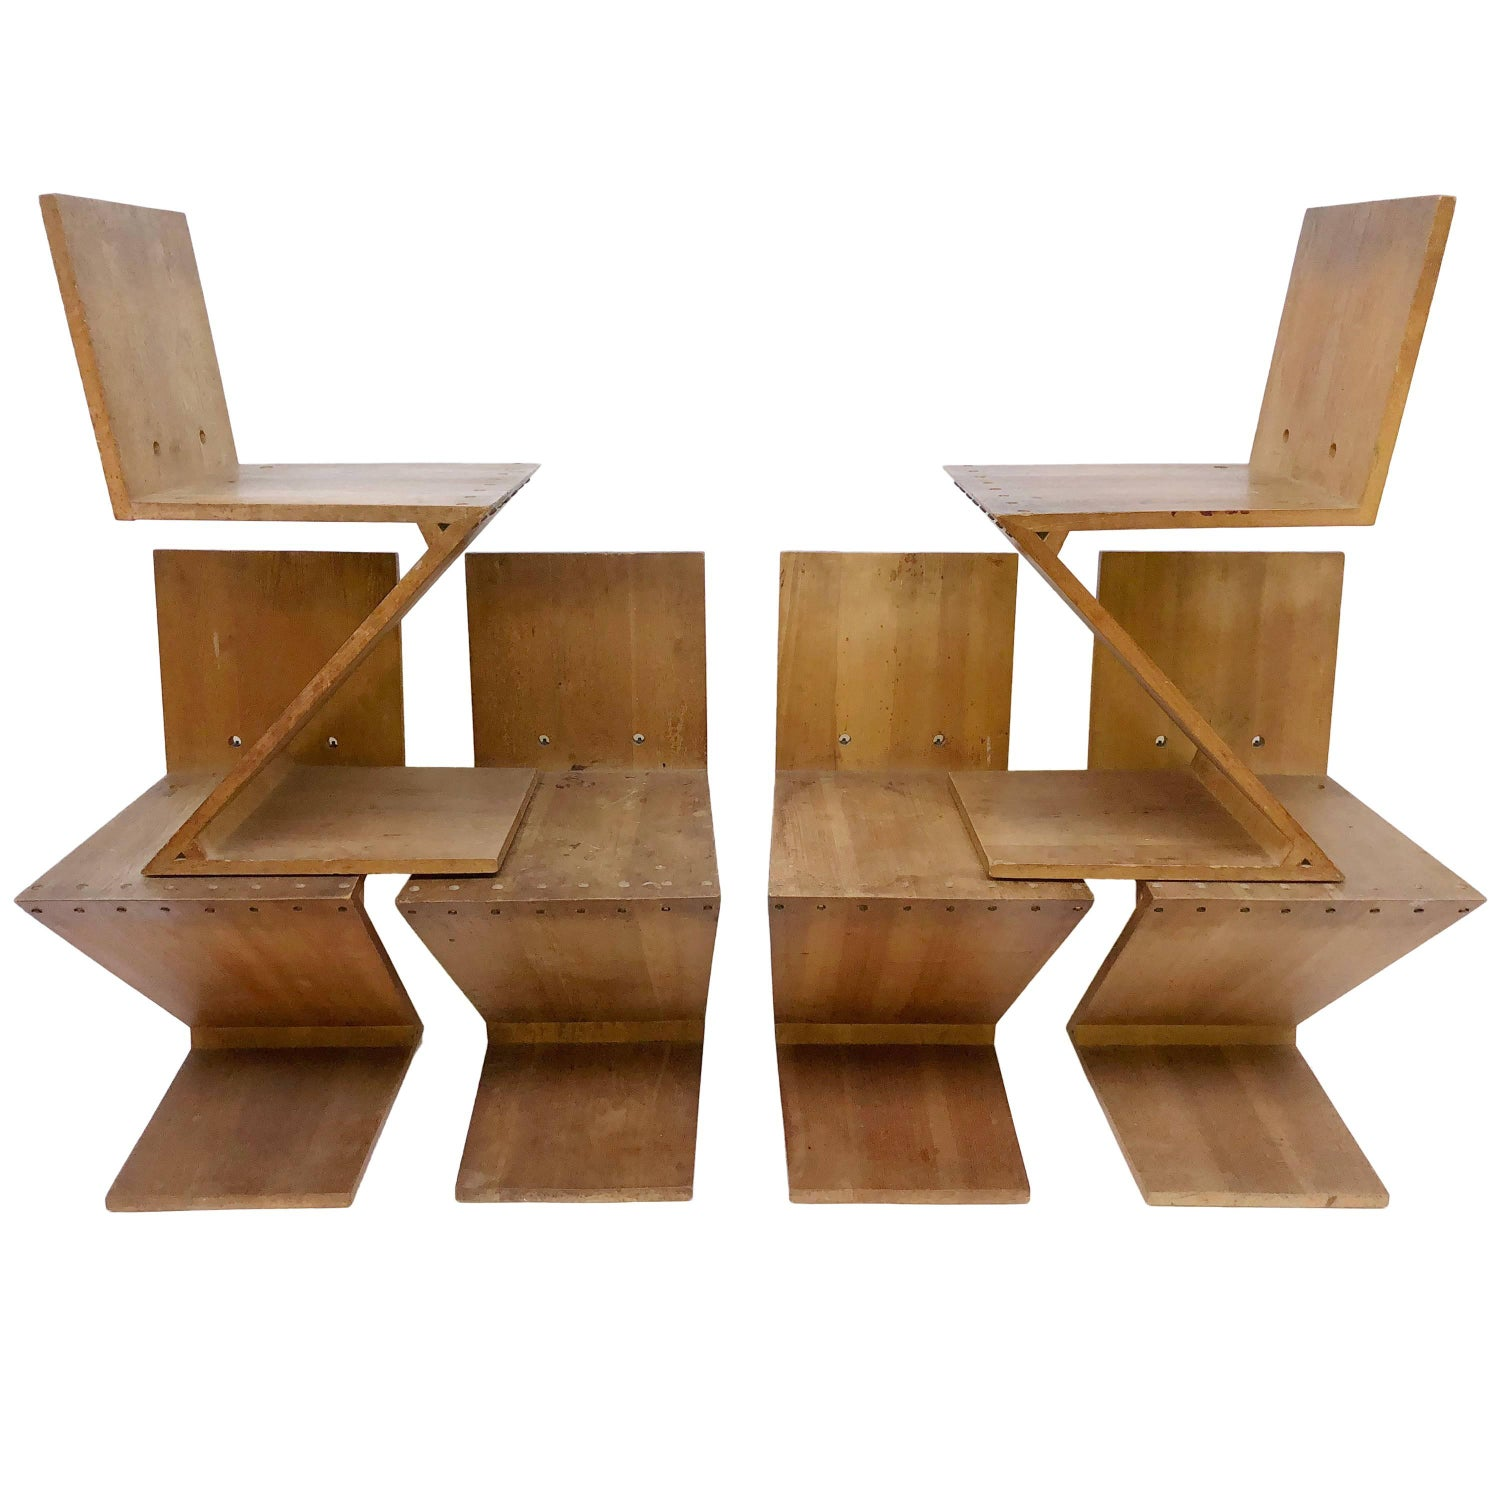 Gerrit Thomas Rietveld Furniture Chairs Sofas Tables & More